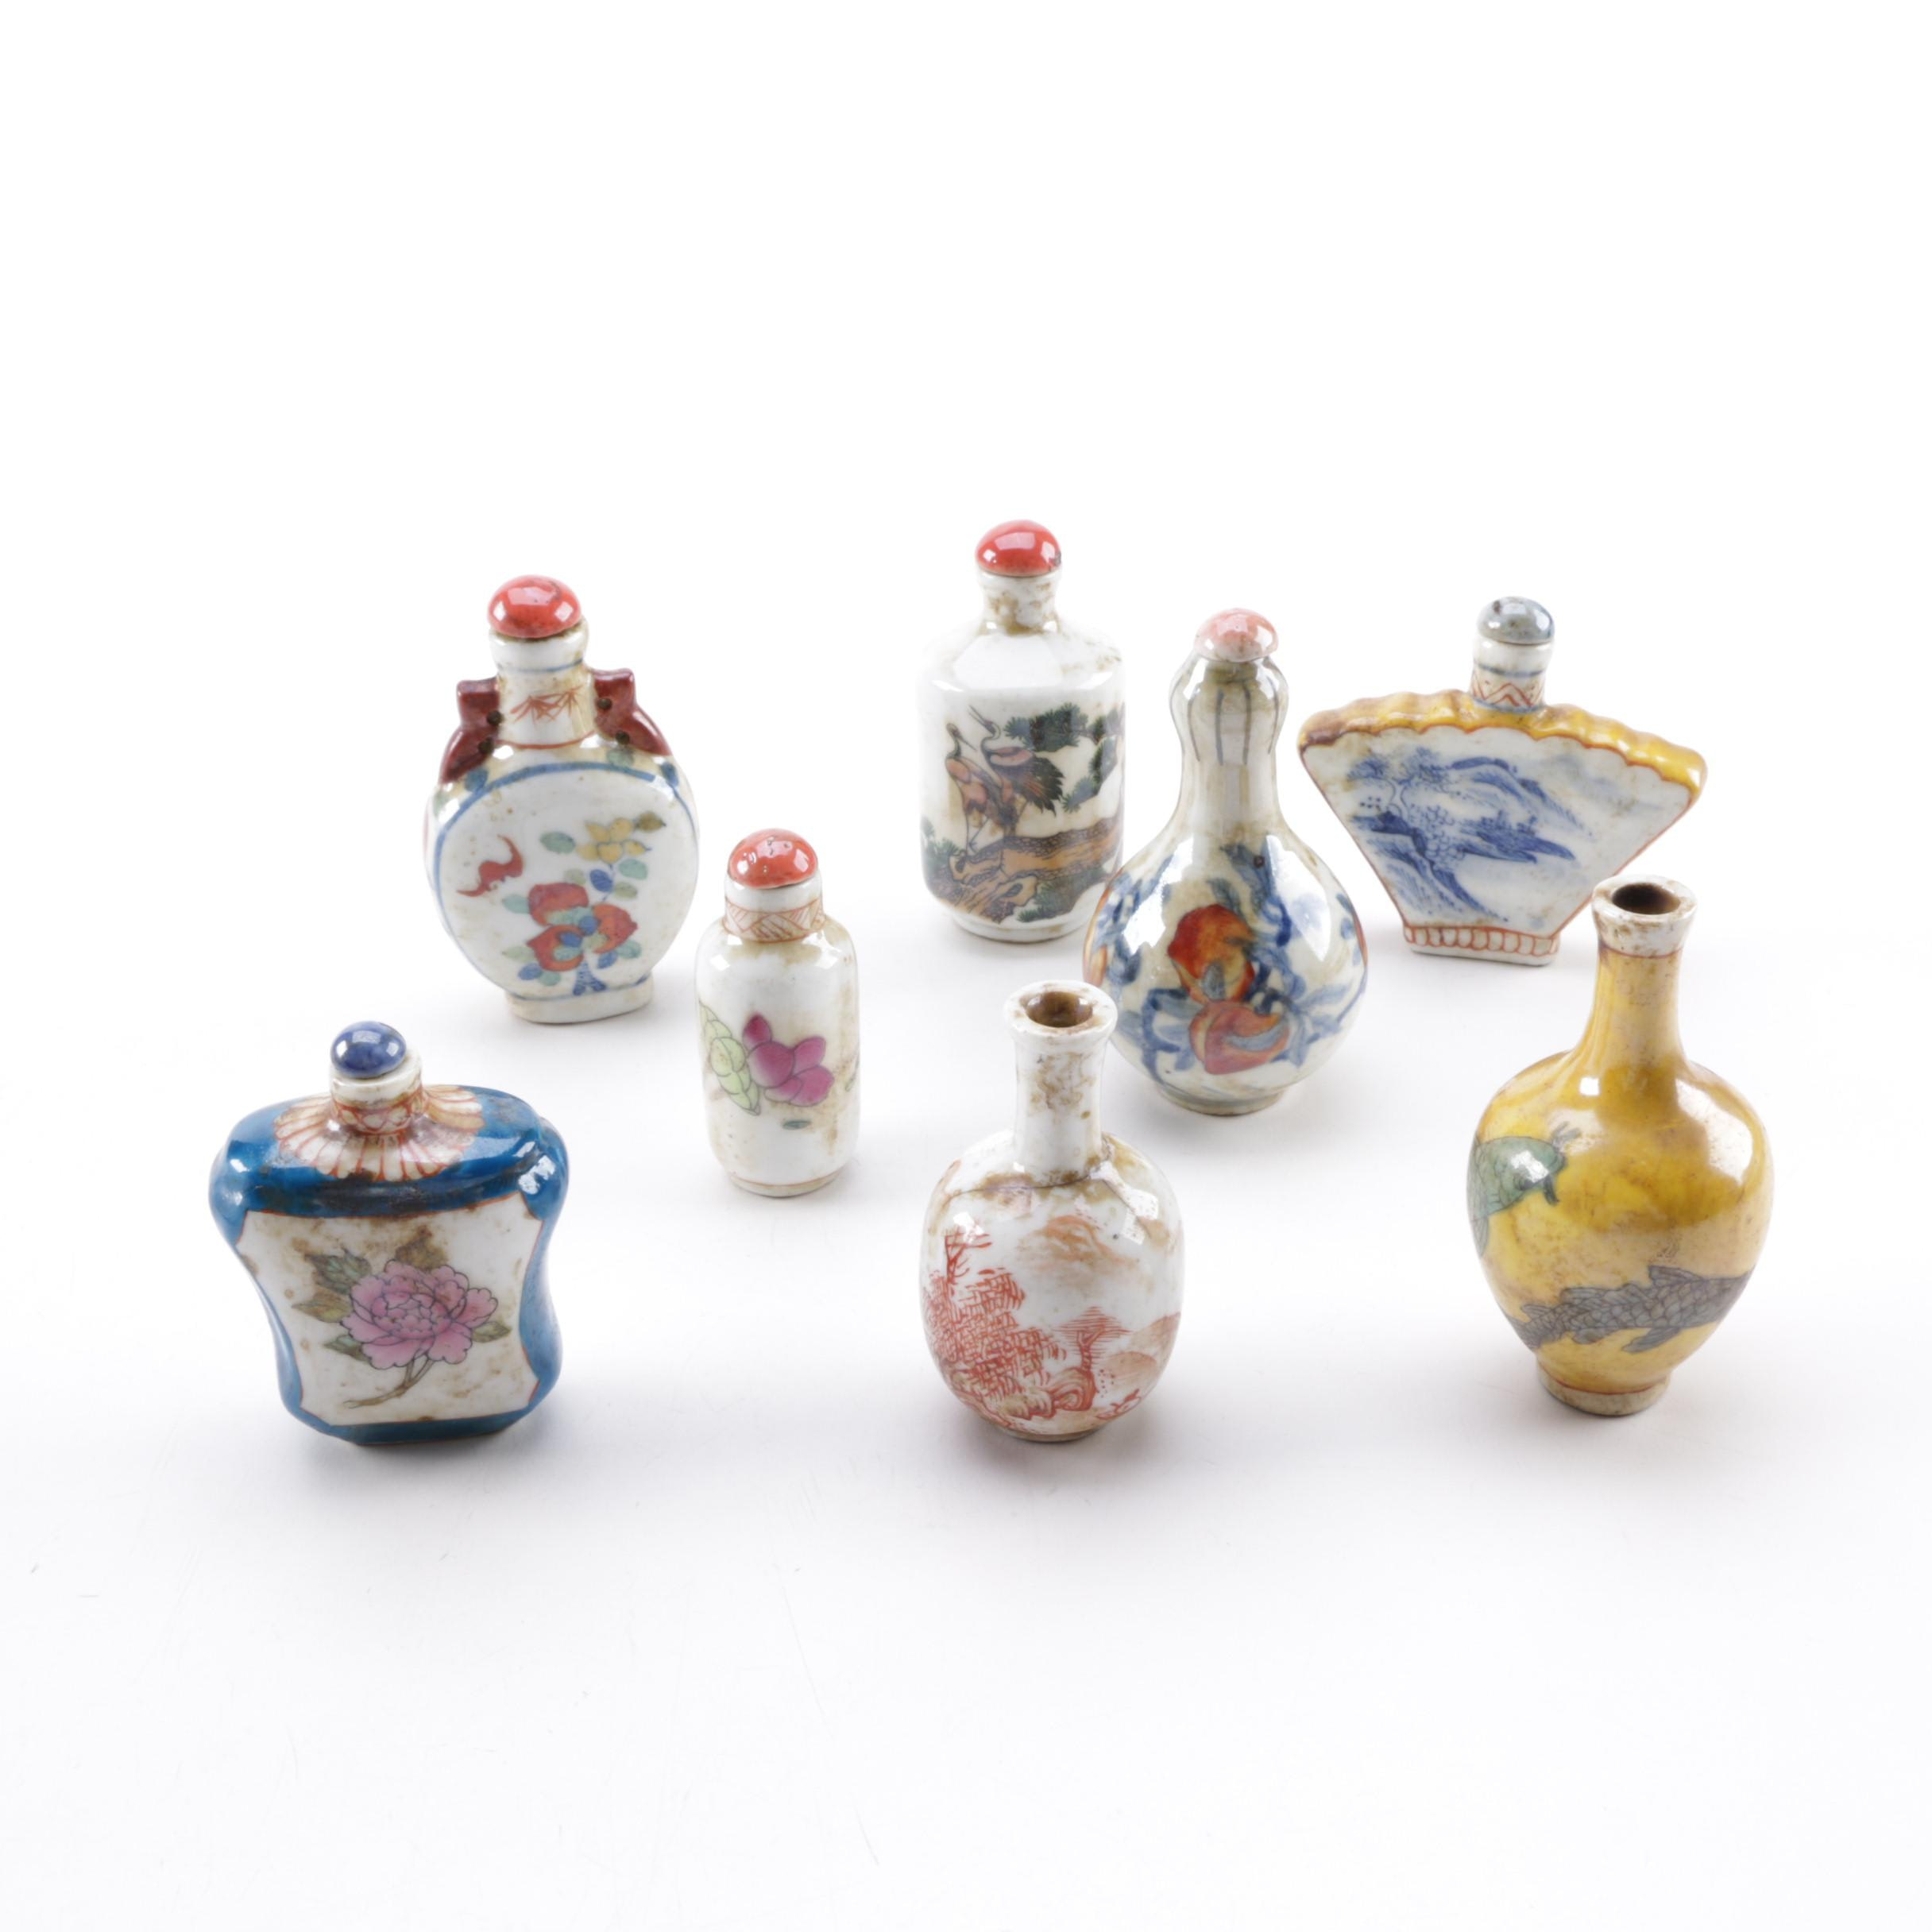 Chinese Ceramic Snuff Bottles Depicting Nature